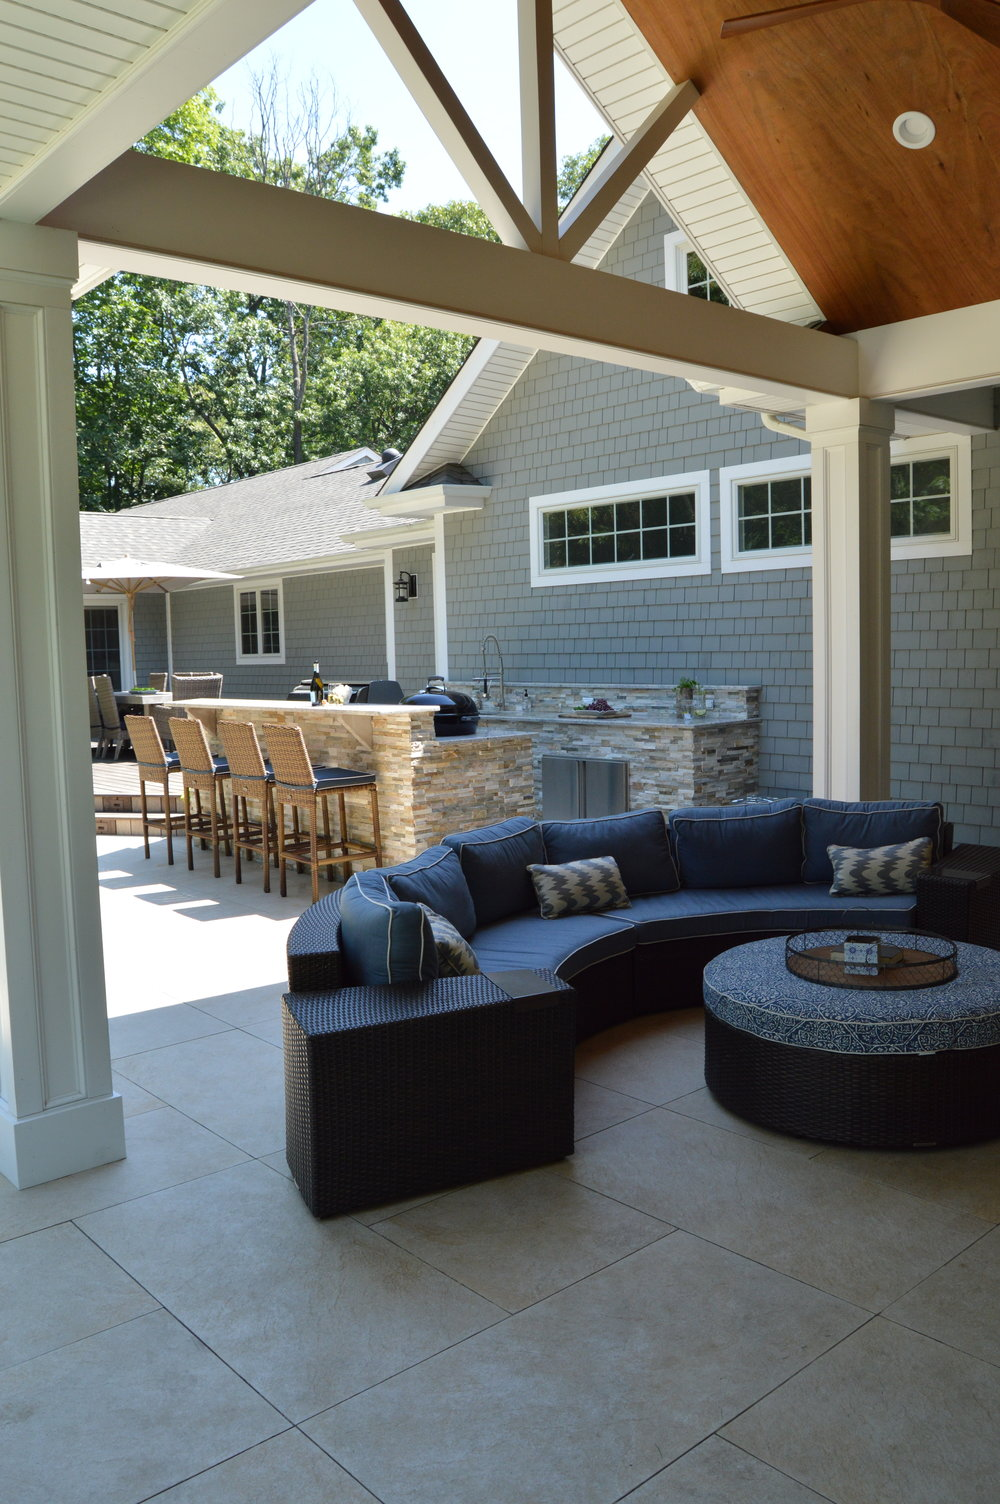 couch on a patio near outdoor kitchen in Smithtown, NY